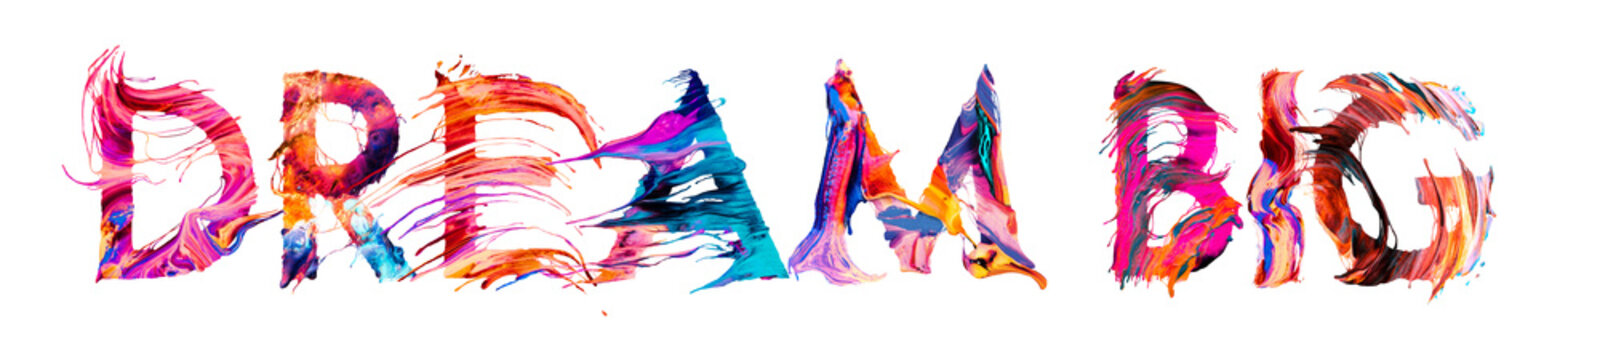 dream big - brush paint colorful banner concept